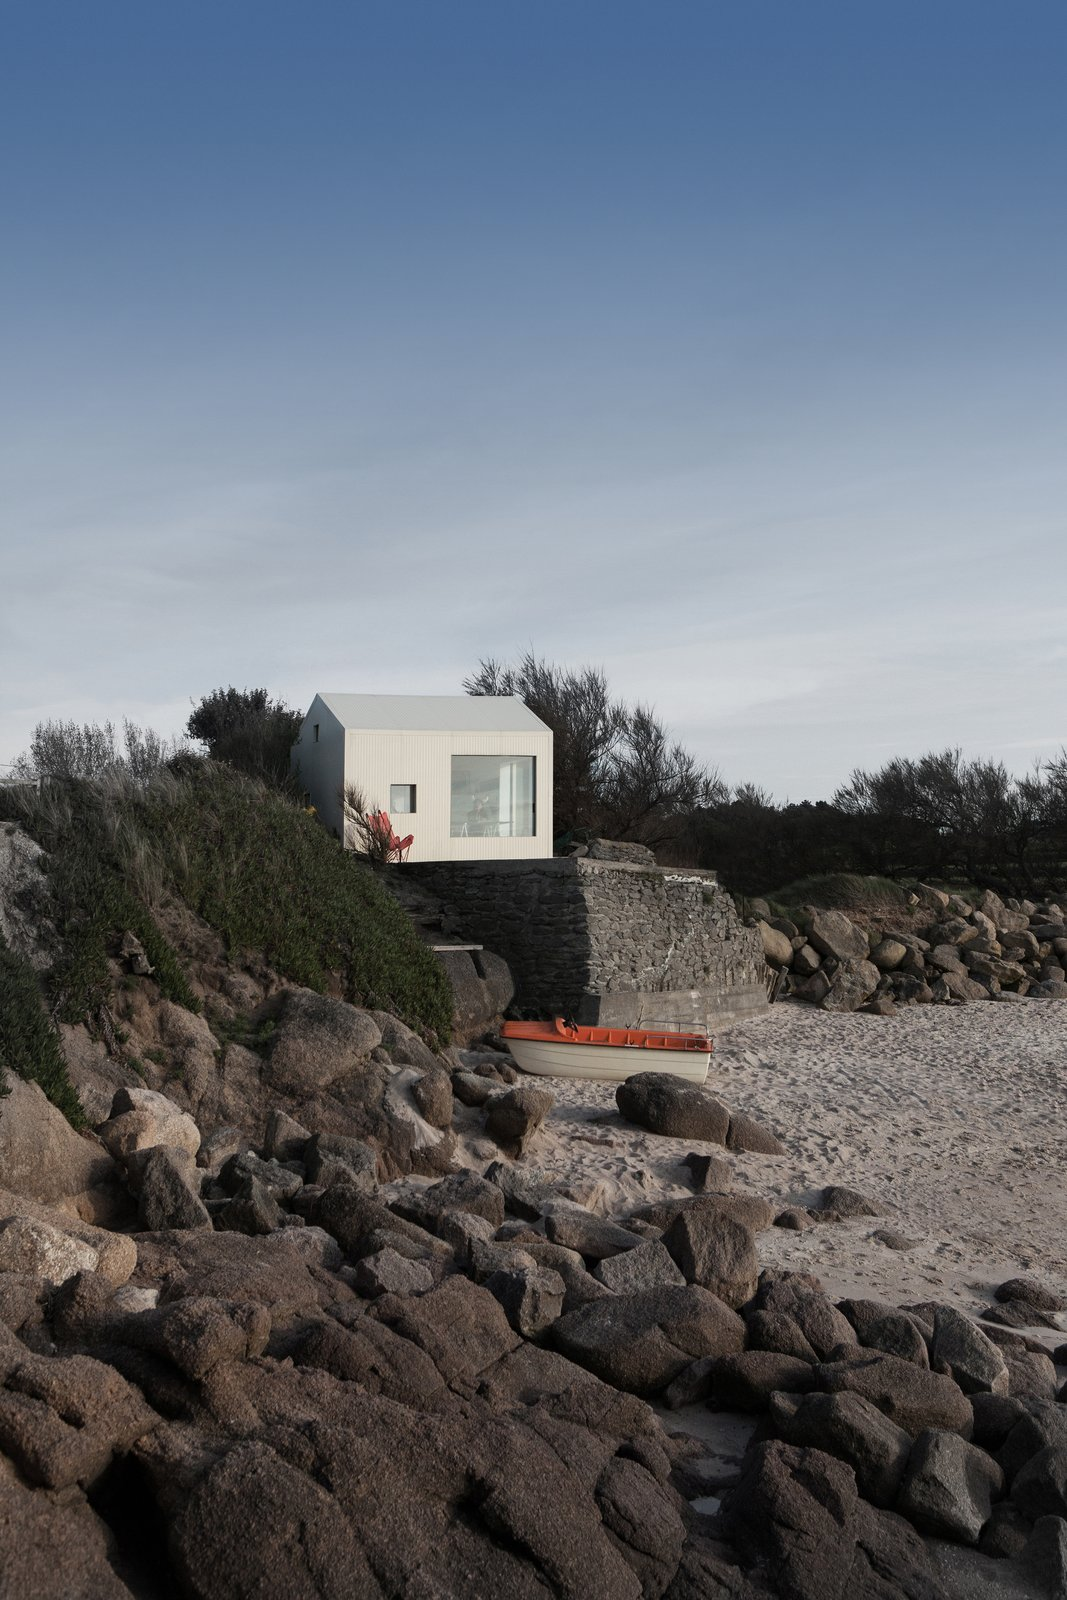 Exterior, Cabin Building Type, House Building Type, Beach House Building Type, and Gable RoofLine @aubry.guillaume  Viking Seaside Summer Cabin